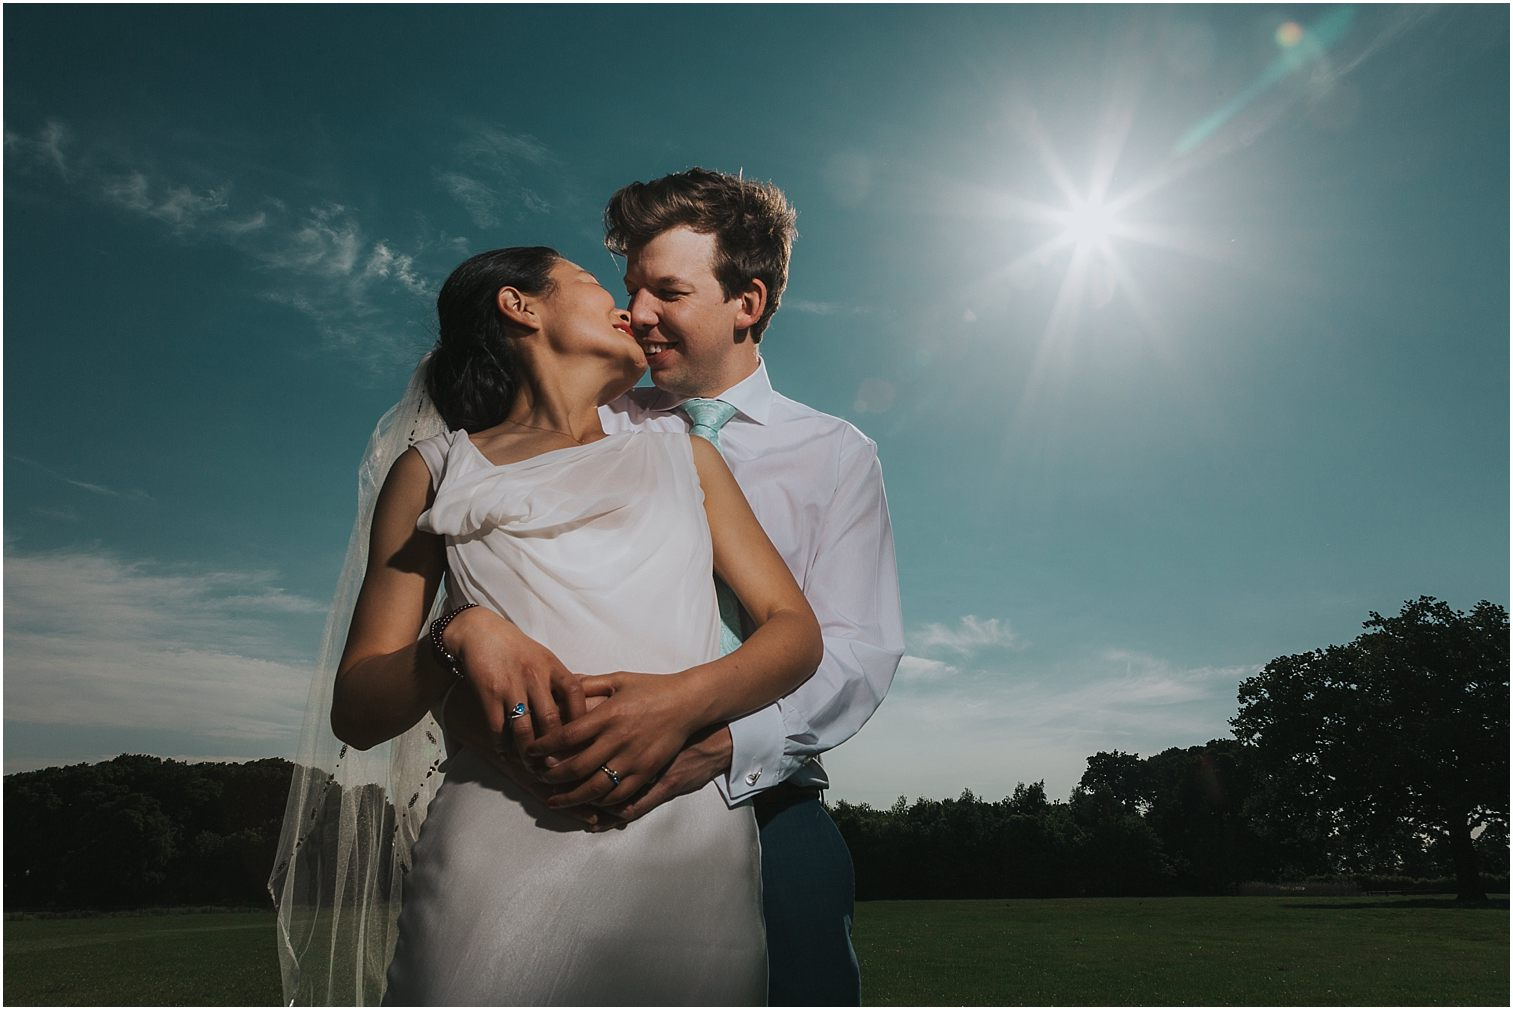 Bride and groom embracing with a sunburst behind them